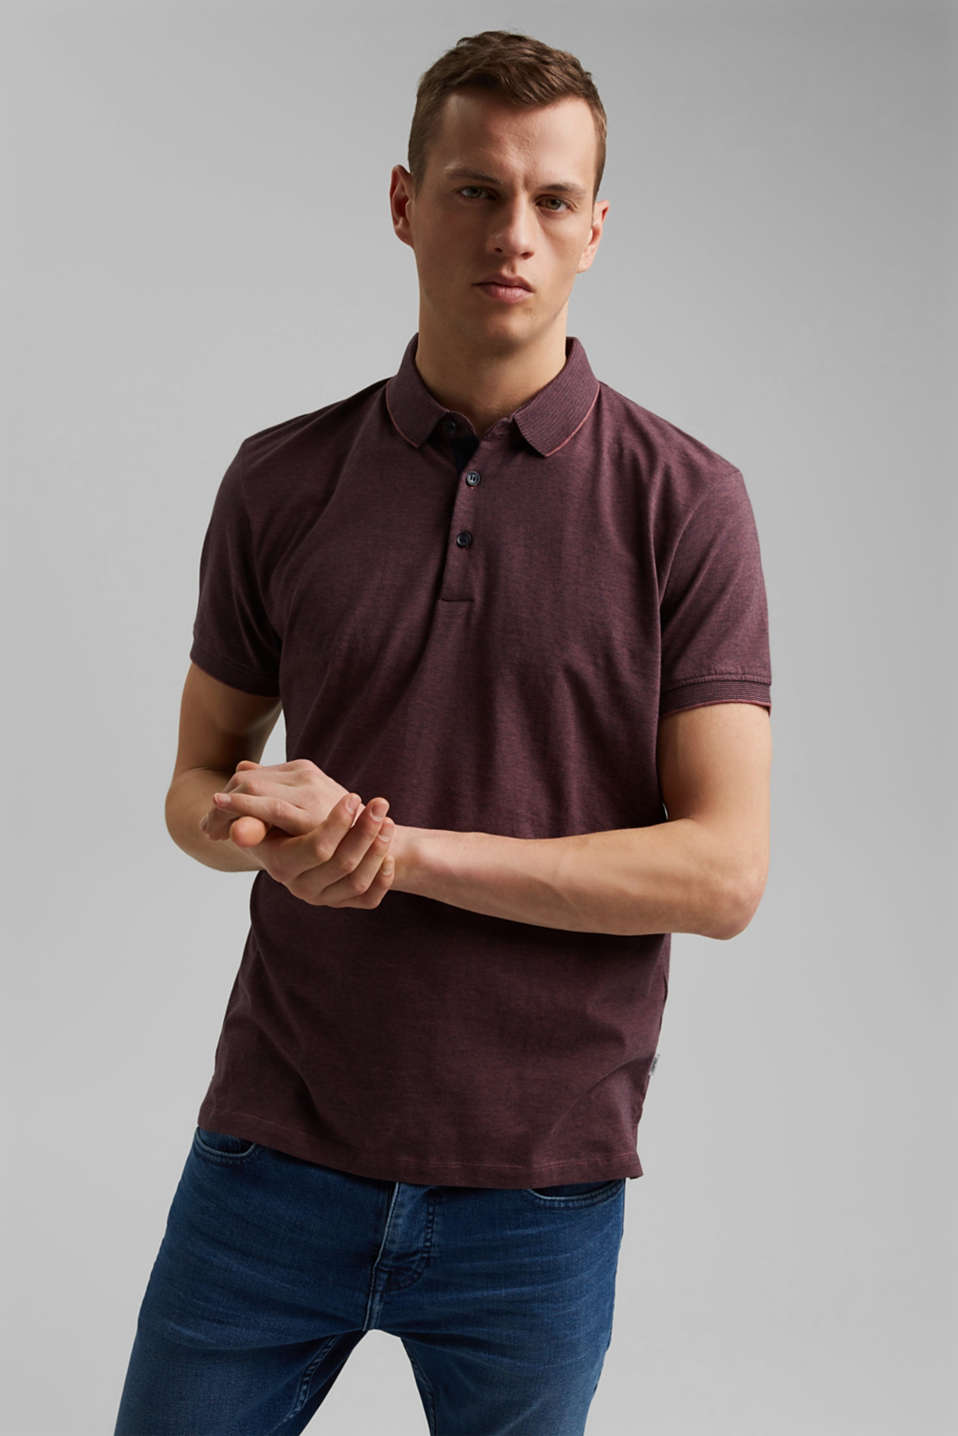 Esprit - Jersey polo shirt made of 100% organic cotton